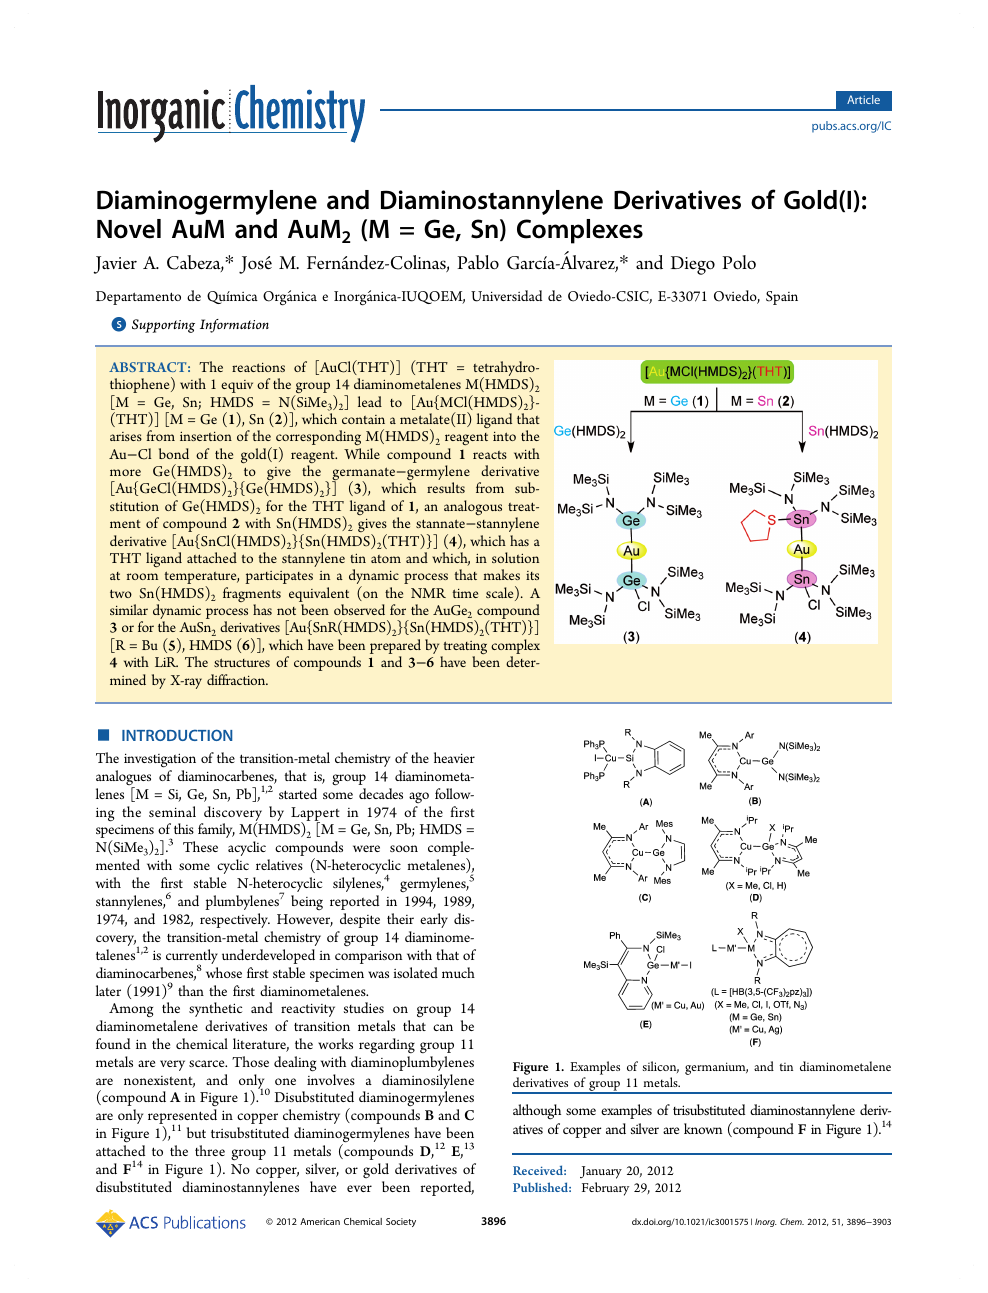 Diaminogermylene and Diaminostannylene Derivatives of Gold(I): Novel AuM  and AuM 2 (M = Ge, Sn) Complexes – topic of research paper in Chemical  sciences. Download scholarly article PDF and read for free